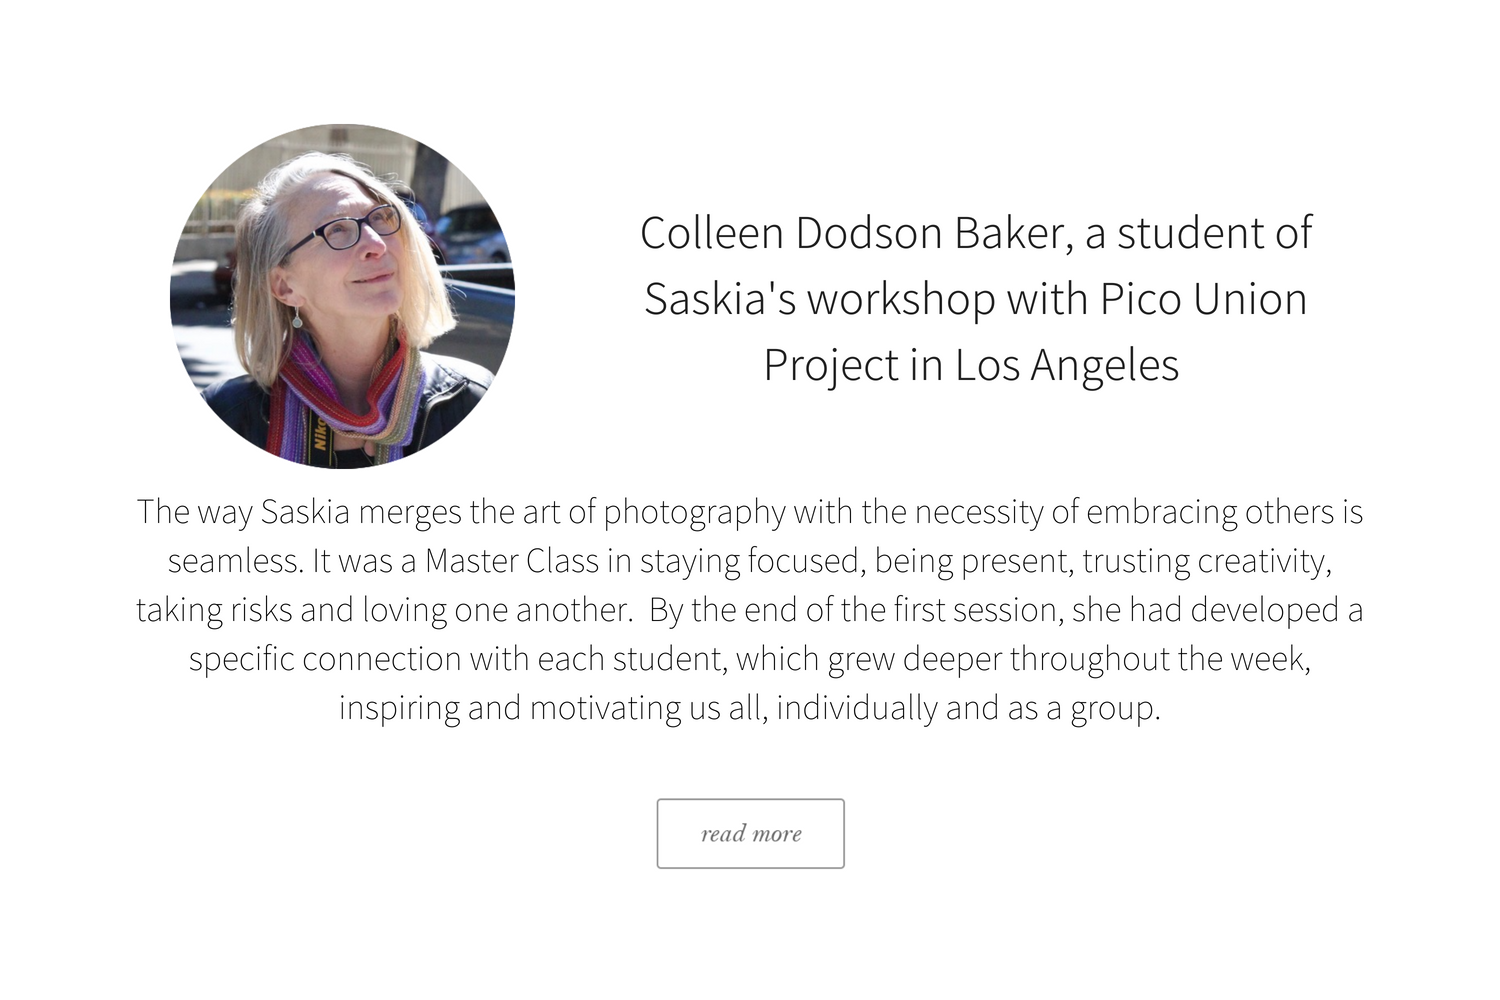 saskia-keeley-photography-documentary-photographer-documentarian-photojournalism-non-violence-workshops-testimonials-colleen-dodson-baker-with-new-eyes-pico-union-project.png